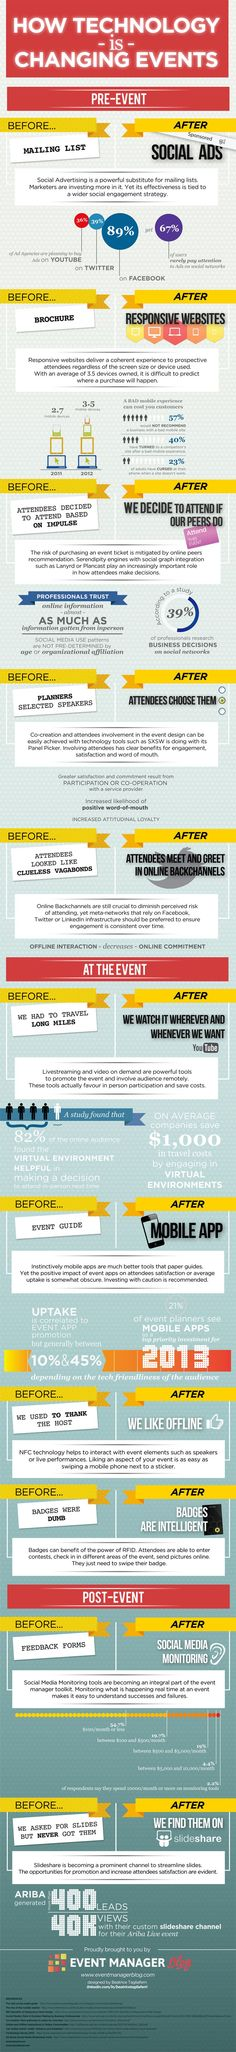 How Are Technology And #SocialMedia Changing Events? #infographic